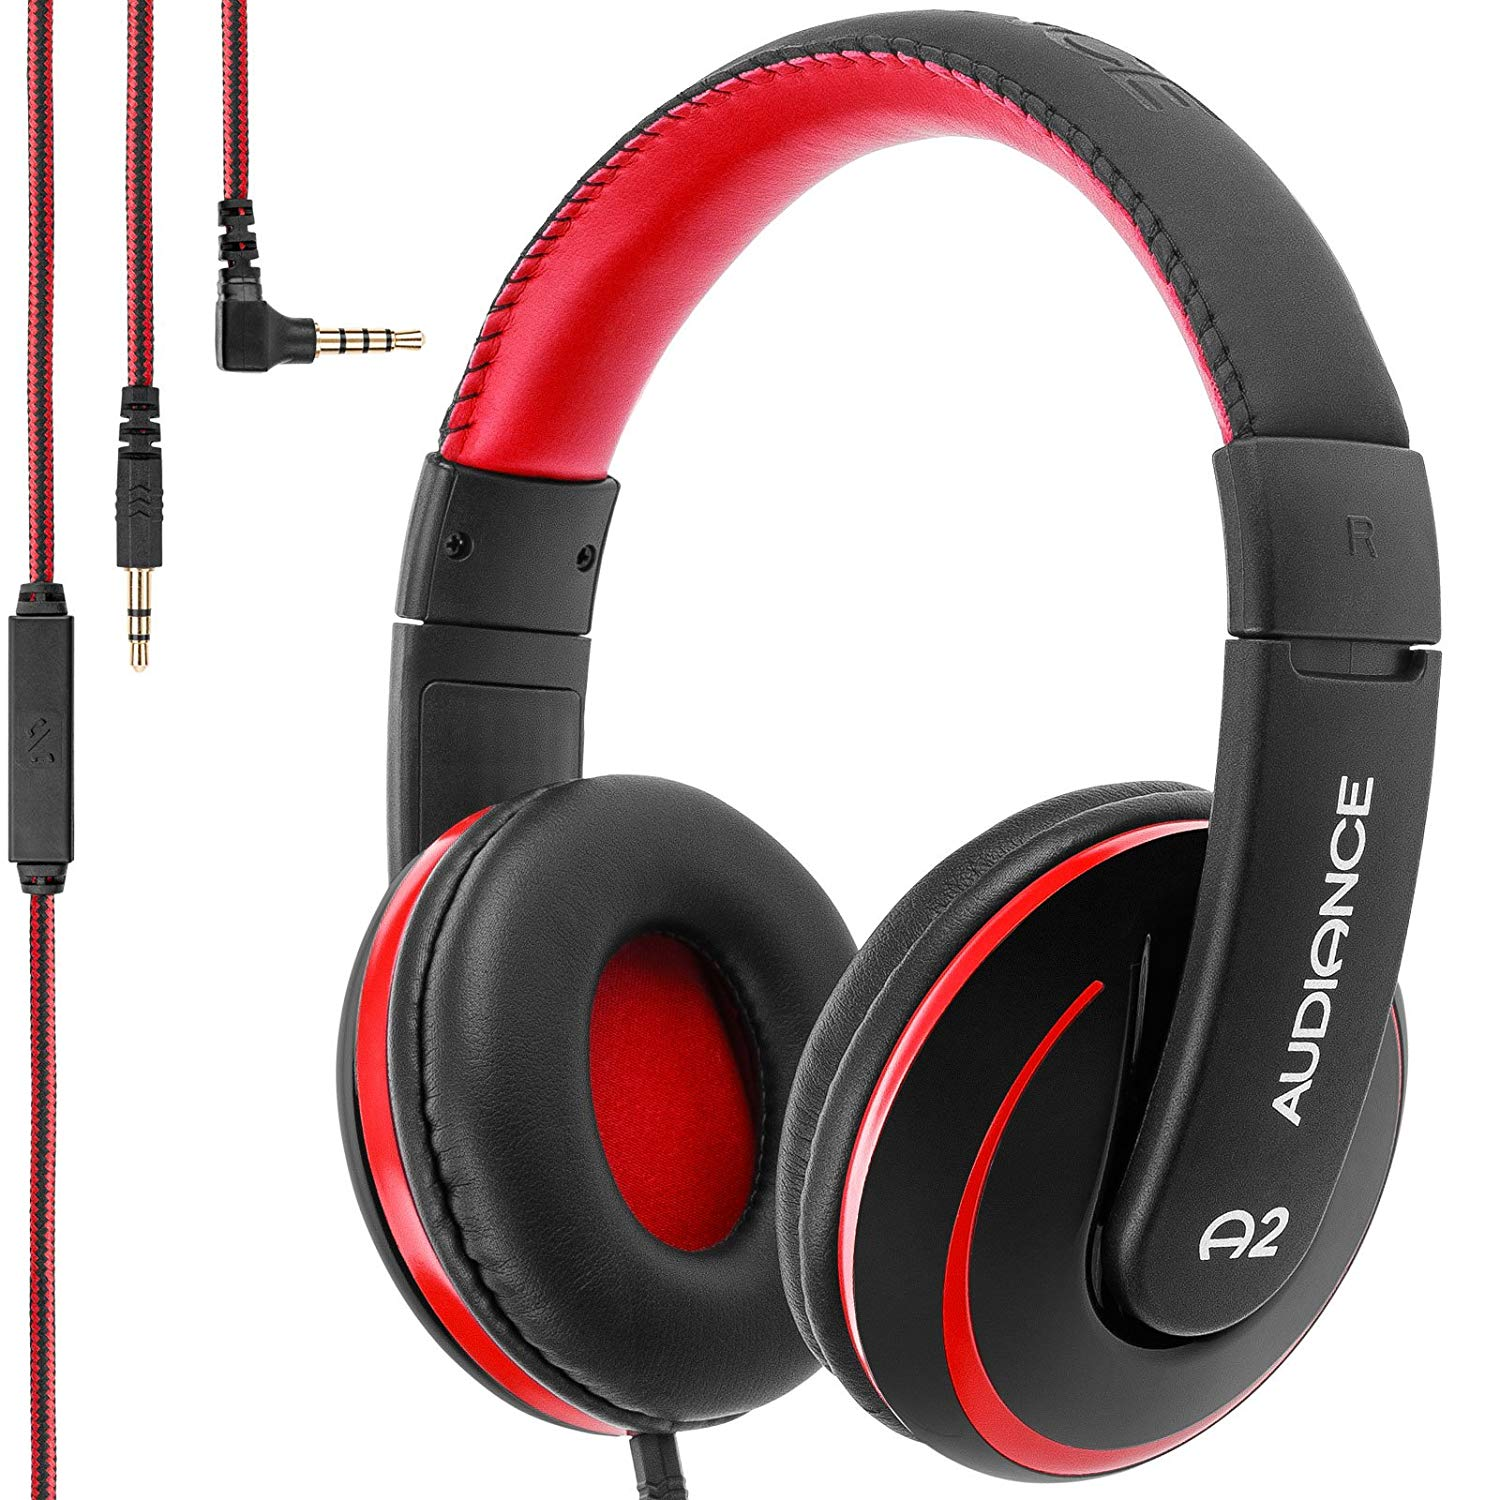 Audiance A2 Over Ear Stereo Headphones in Black & Red [Accessories]